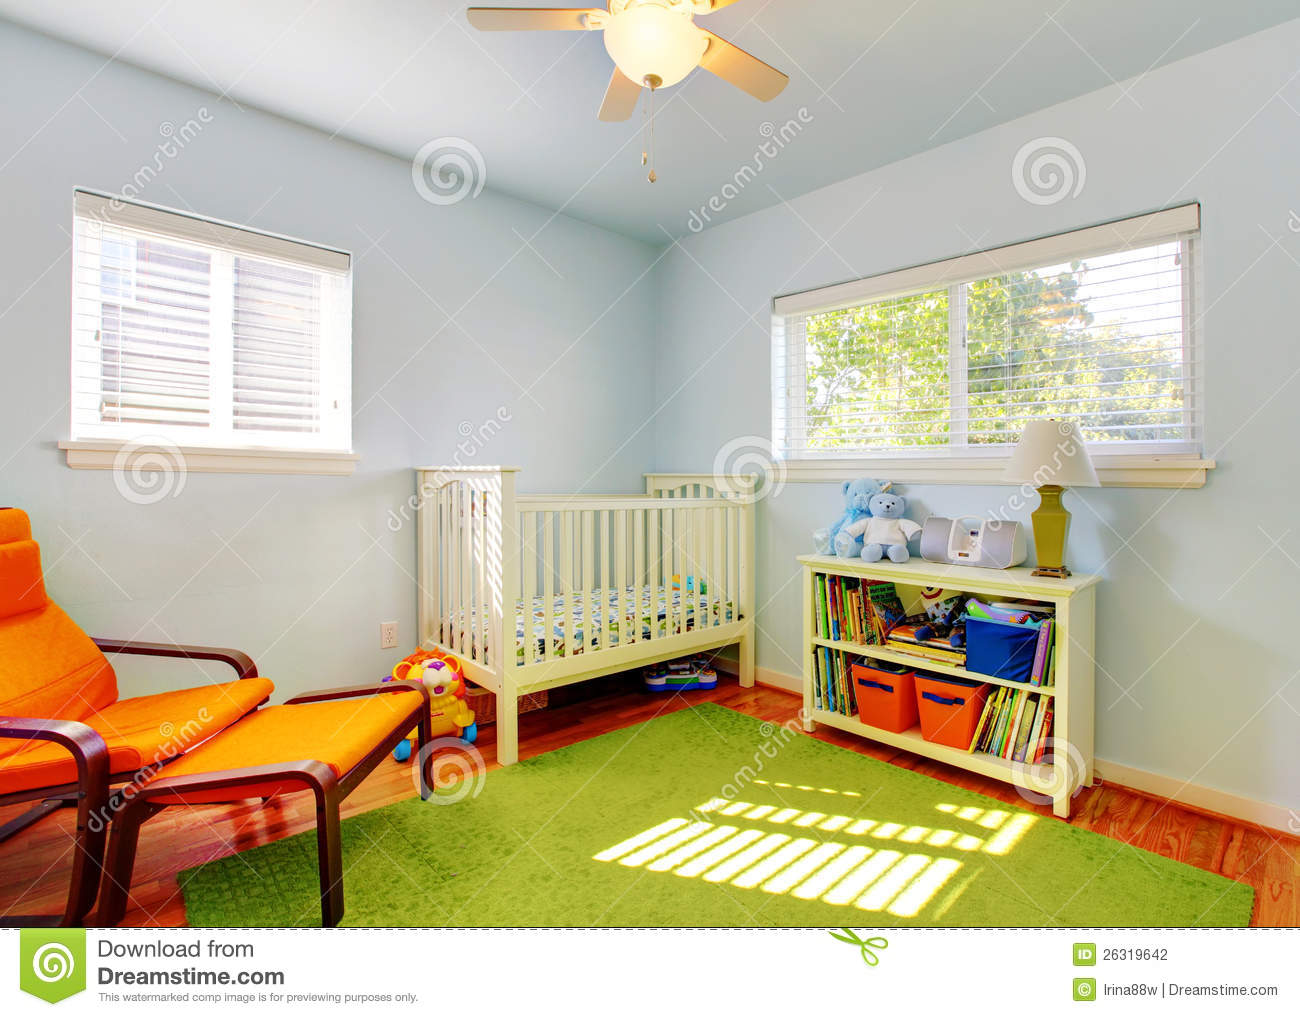 Baby Nursery Room Design With Green Rug, Blue Walls And Orange Chair ...